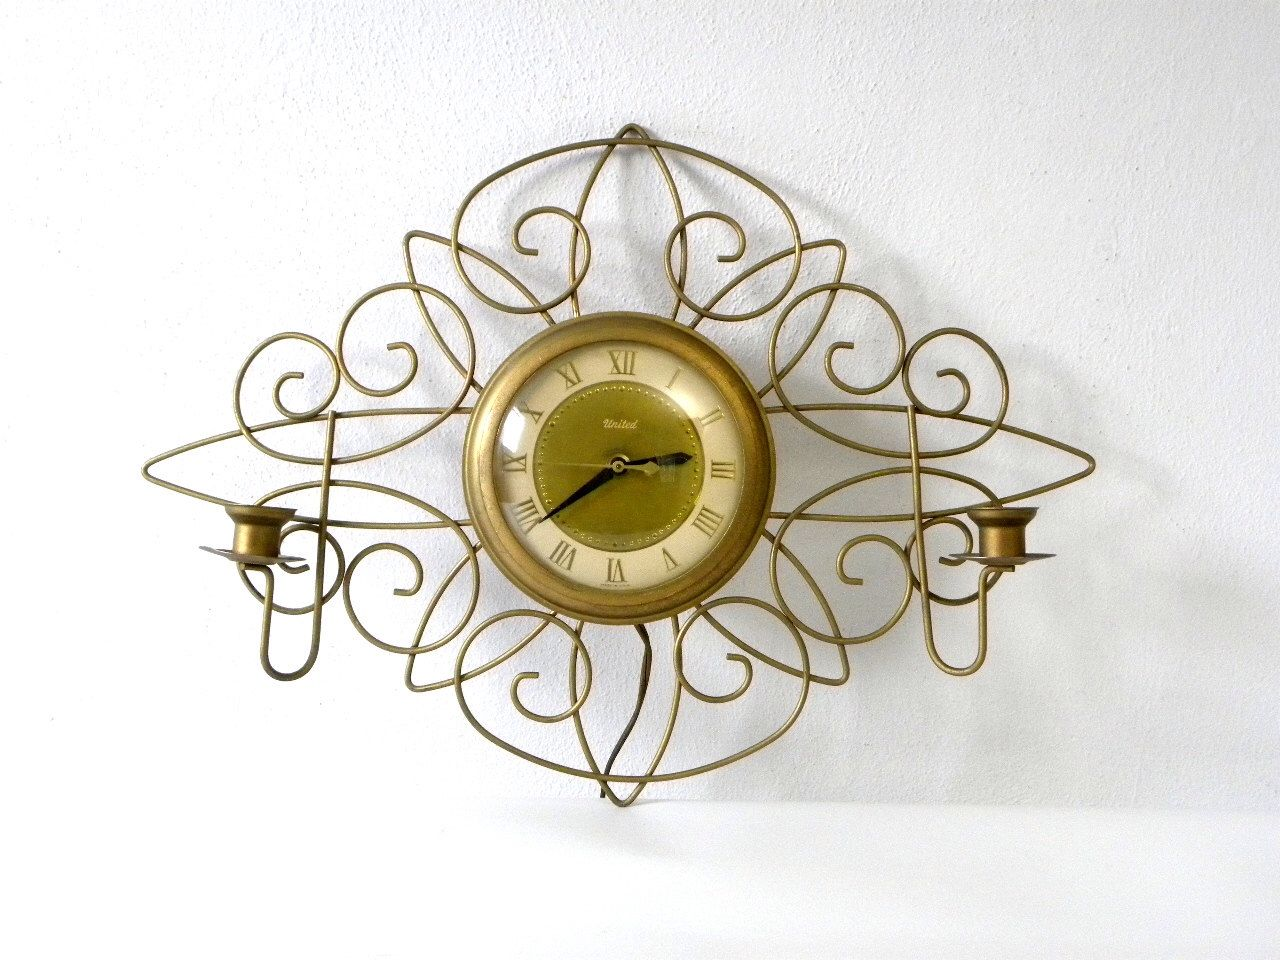 Vintage Mid-Century 1950s/60s United Gold Wire Wall Clock and Candle Holder by mockingbirdroad on Etsy https://www.etsy.com/listing/200834228/vintage-mid-century-1950s60s-united-gold